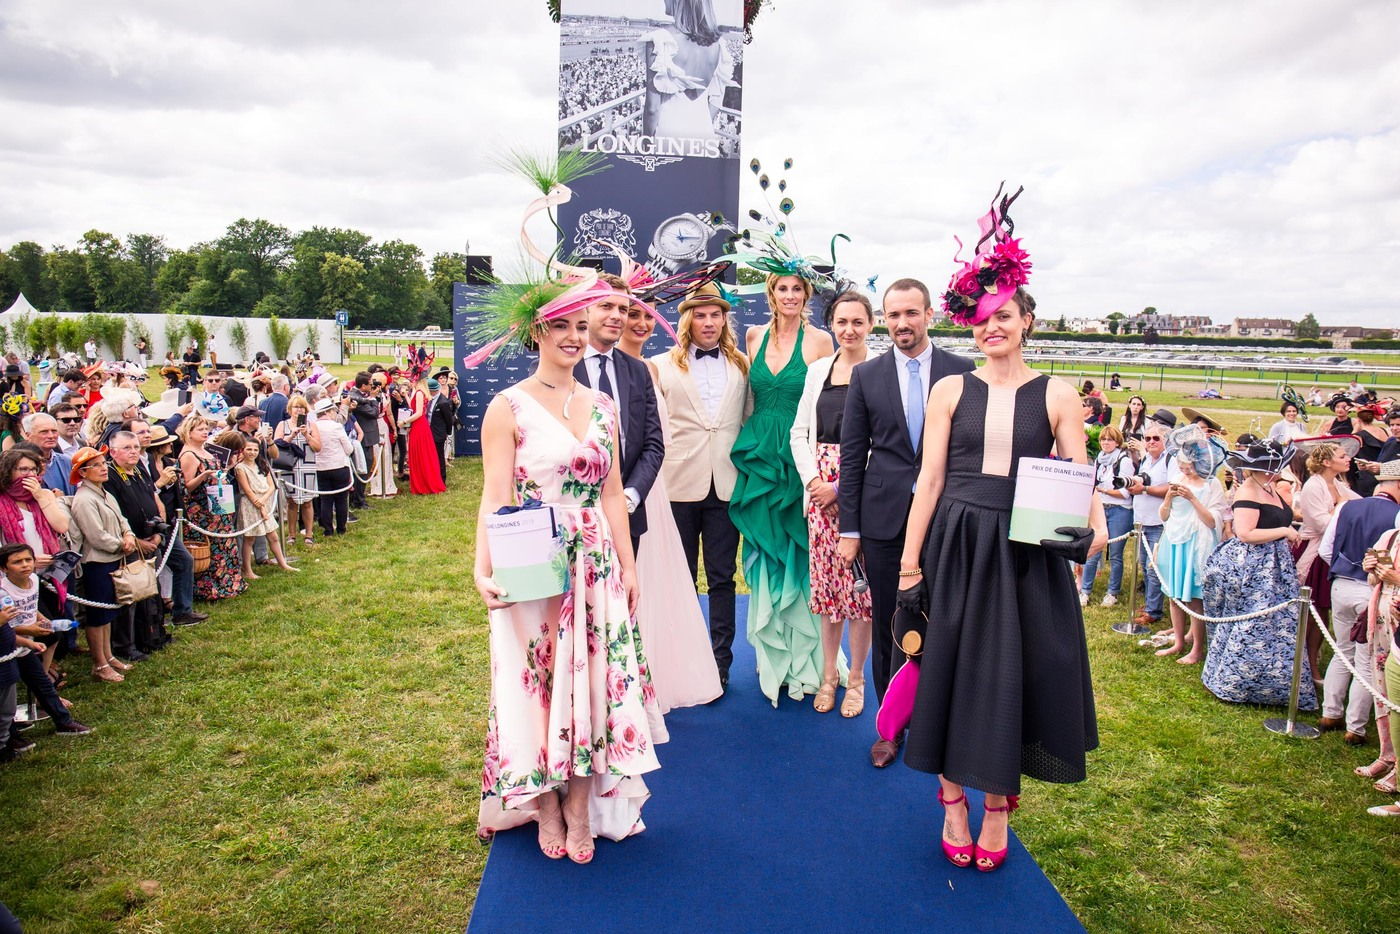 Longines Flat Racing Event: Laurens makes an astounding win at the 2018 Prix de Diane Longines 10